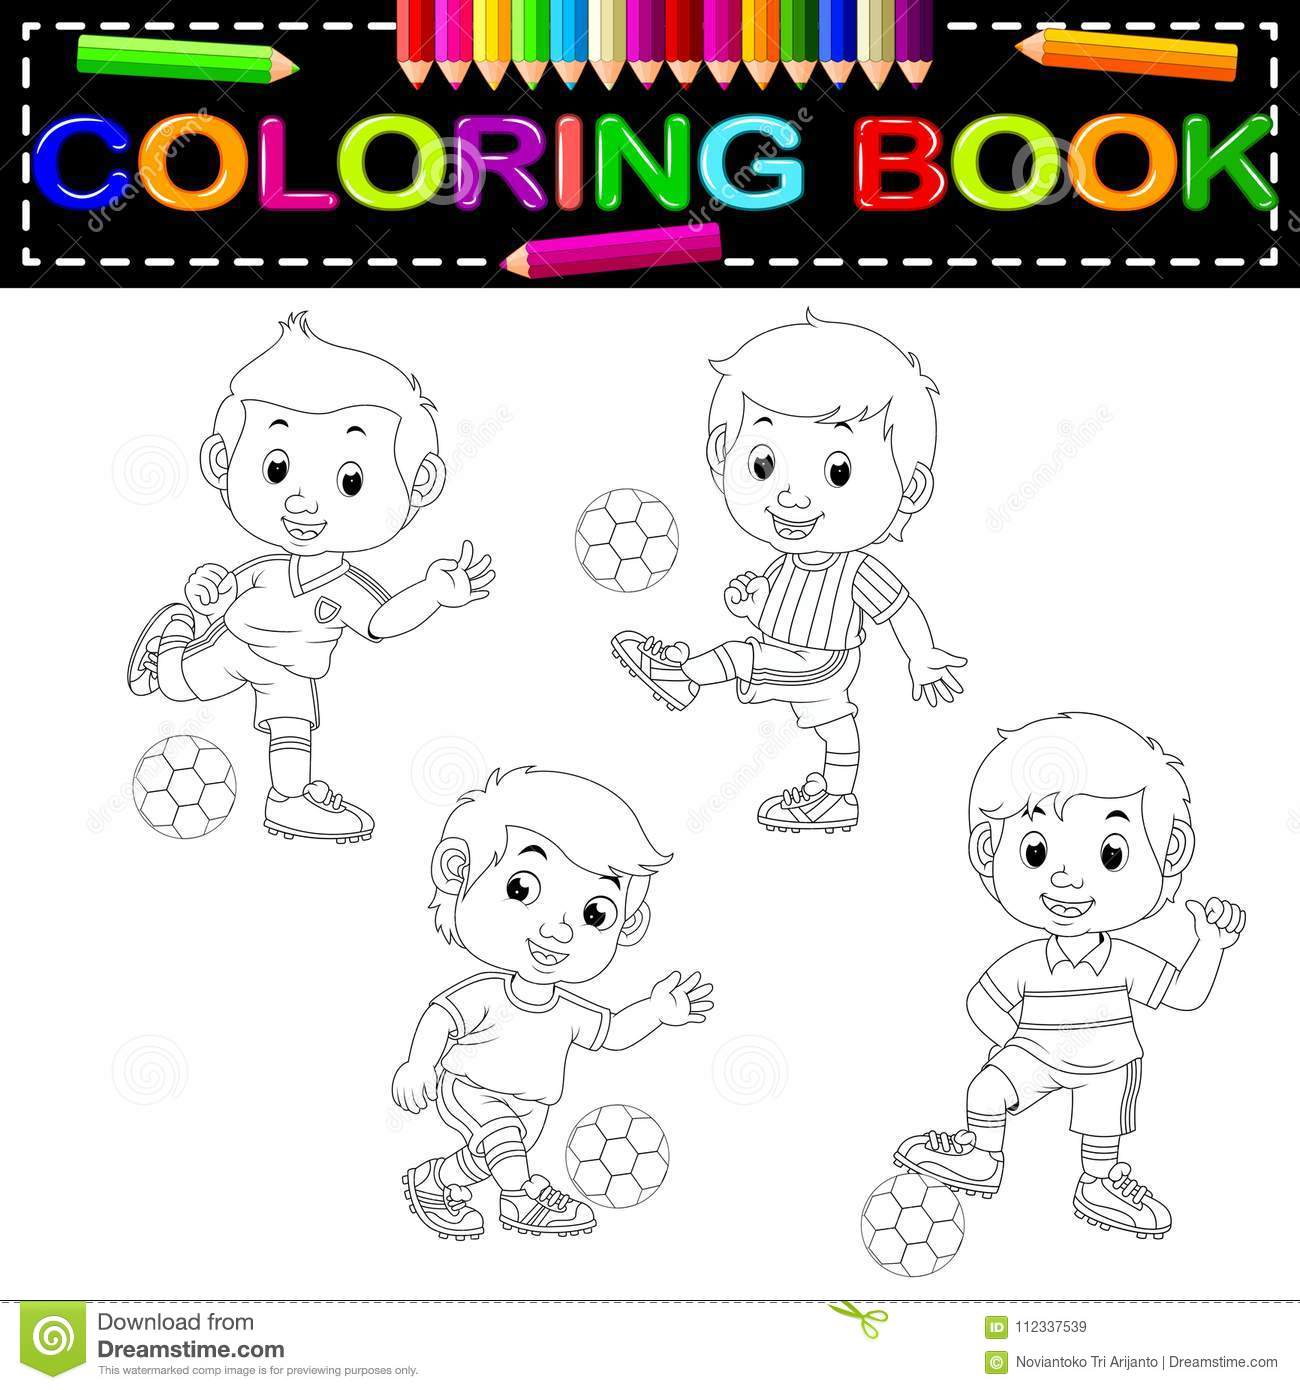 Soccer coloring book stock vector. Illustration of play - 112337539